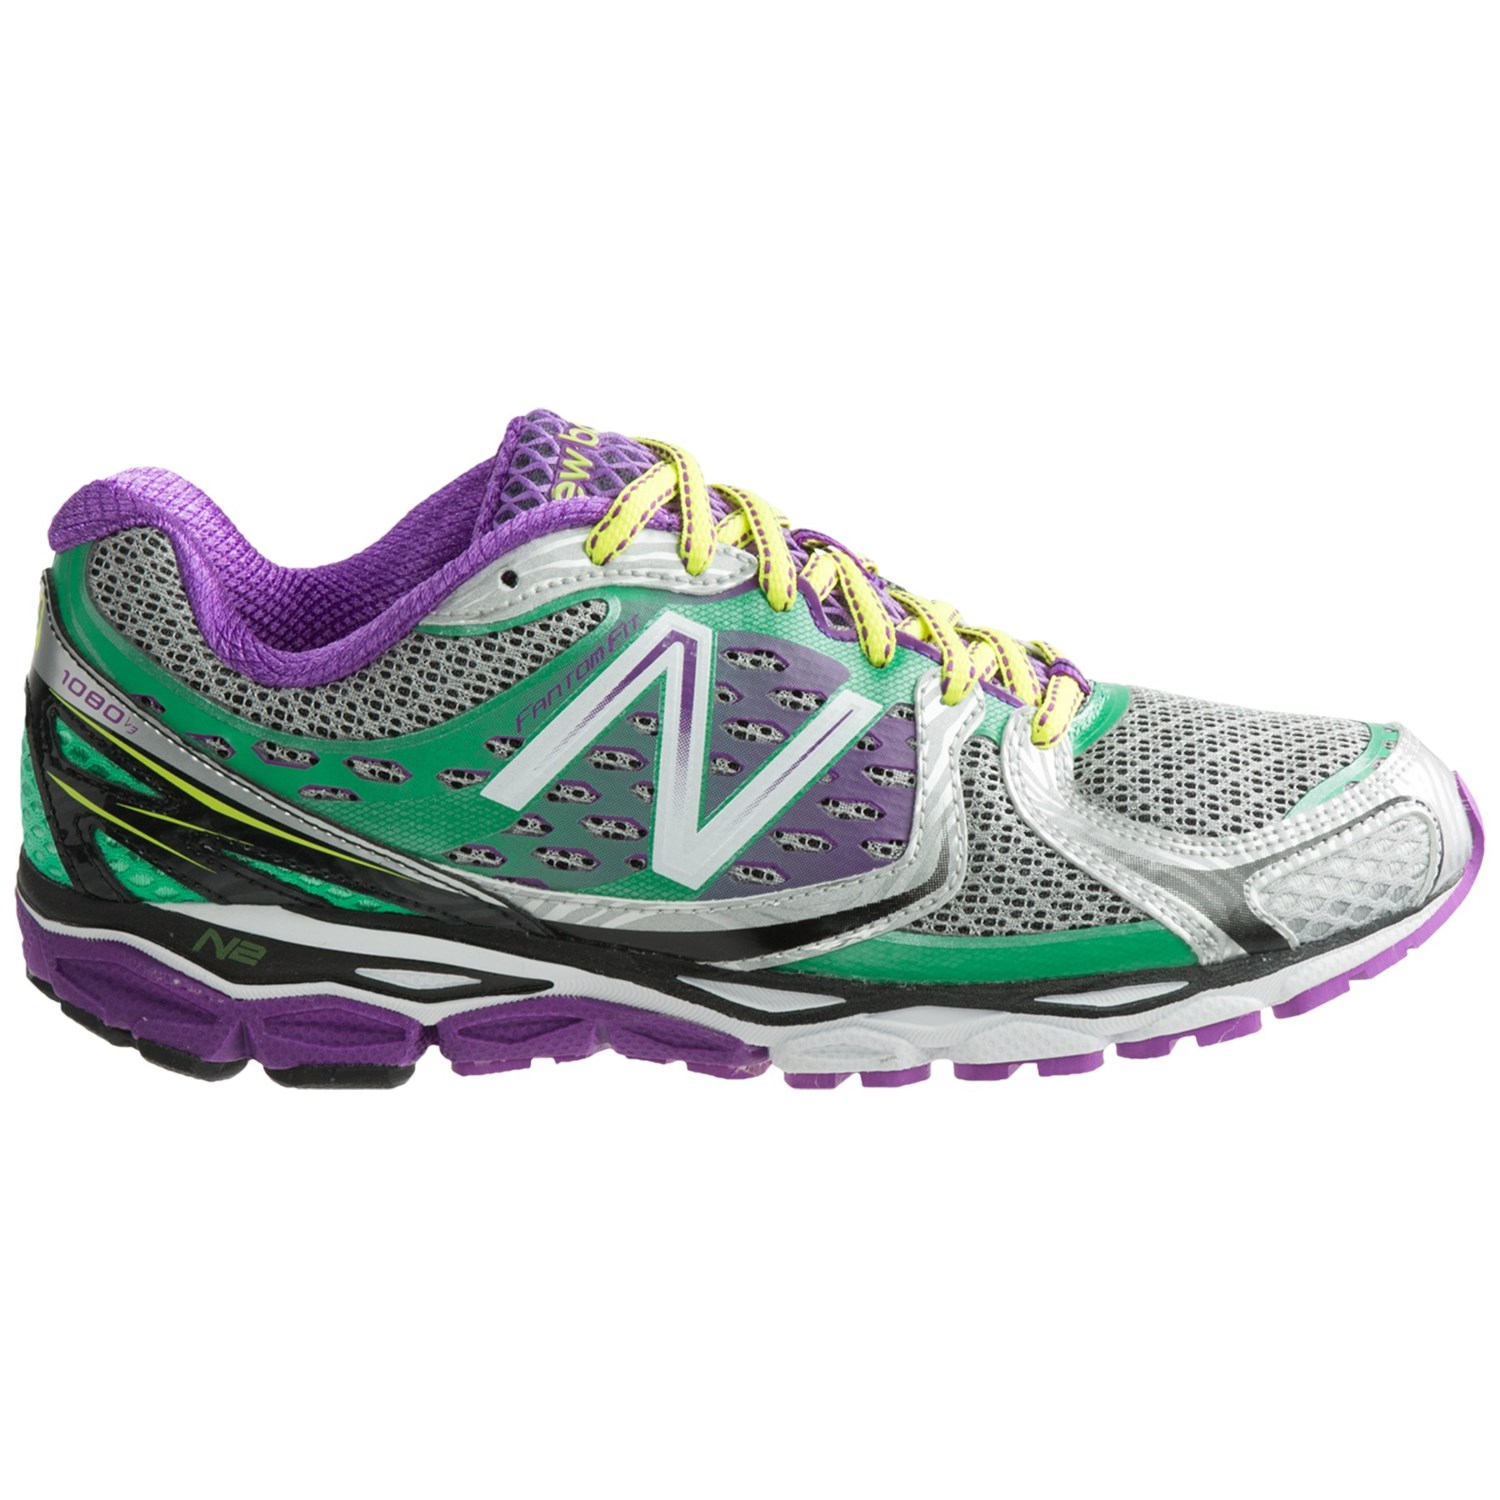 4fadt42y sale new balance 1340 womens running shoes